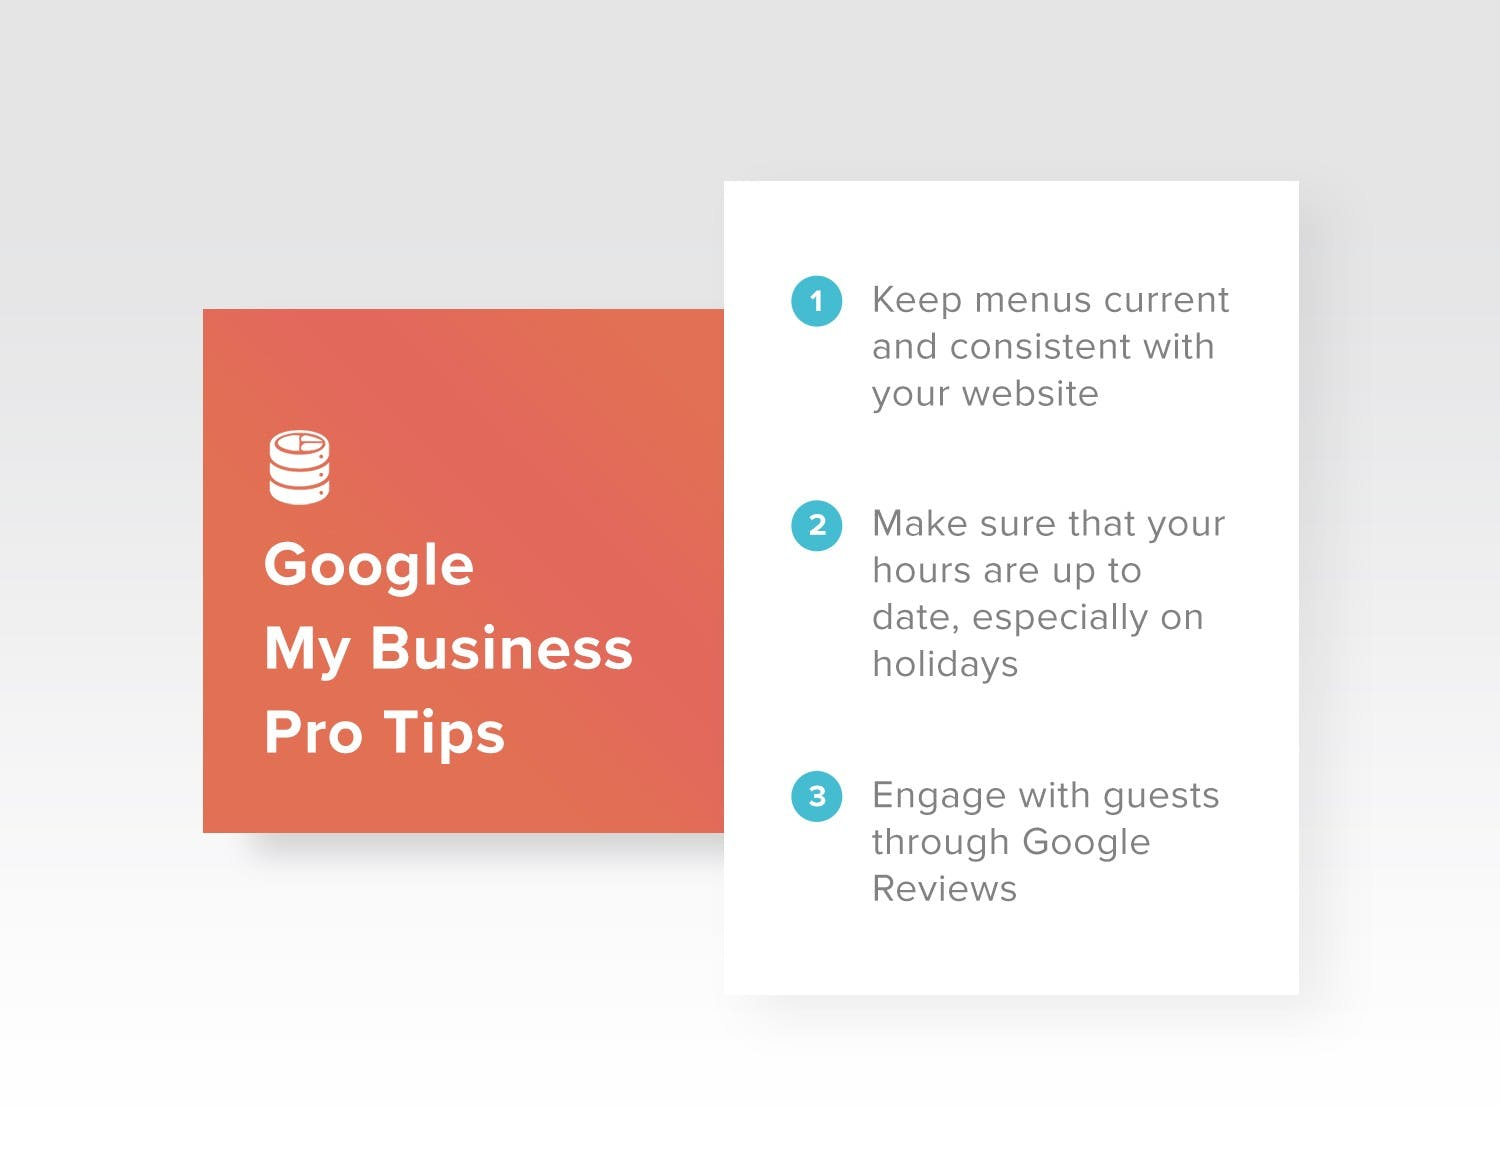 Google My Business Pro Tips